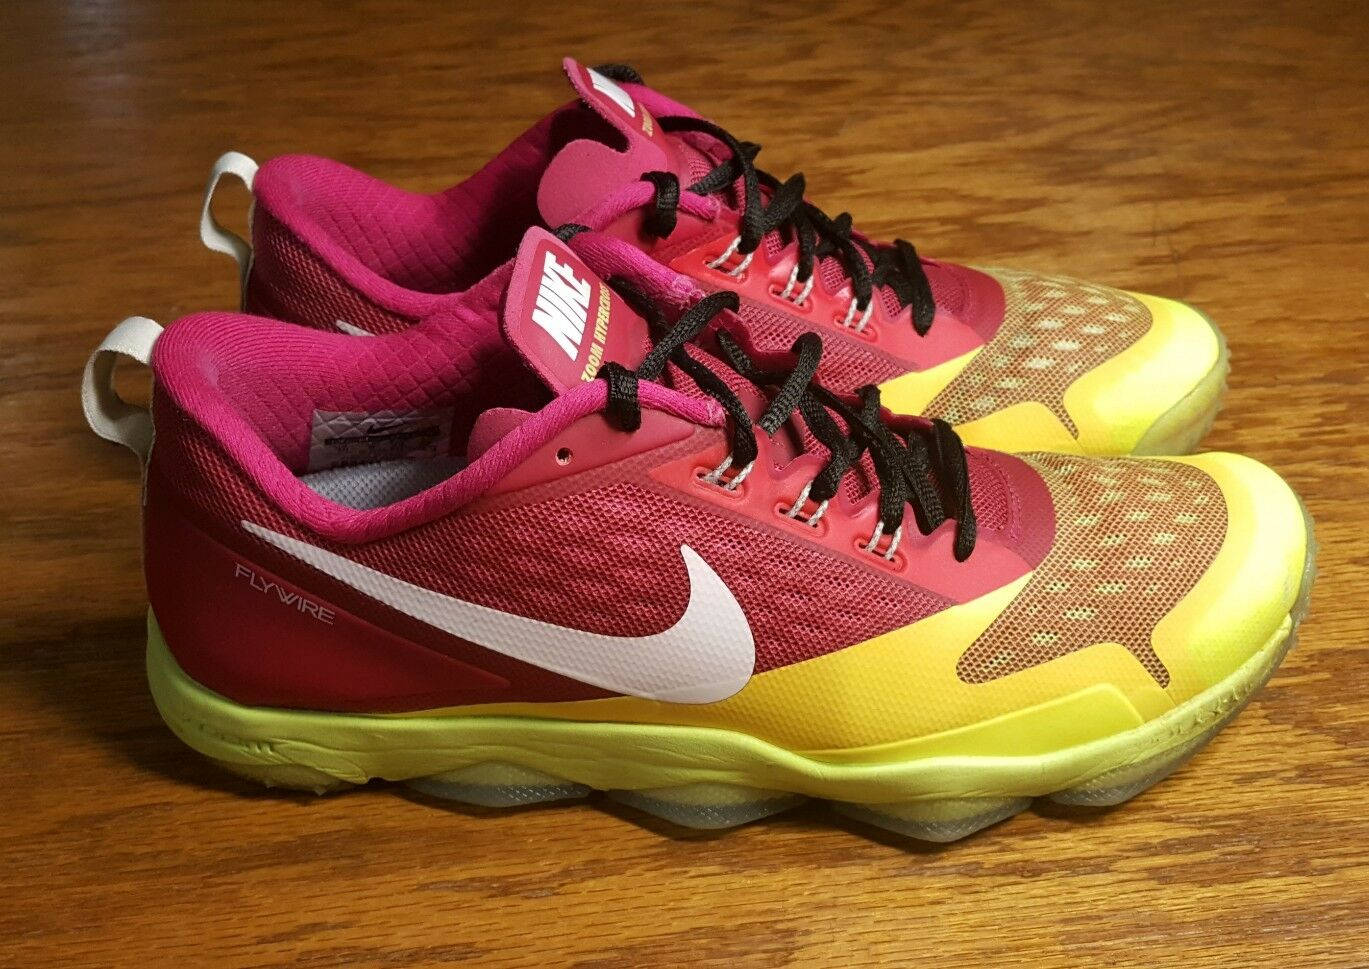 Nike Zoom Hypercross TR2 men's running shoes - Sz 10 M - Excellent condition